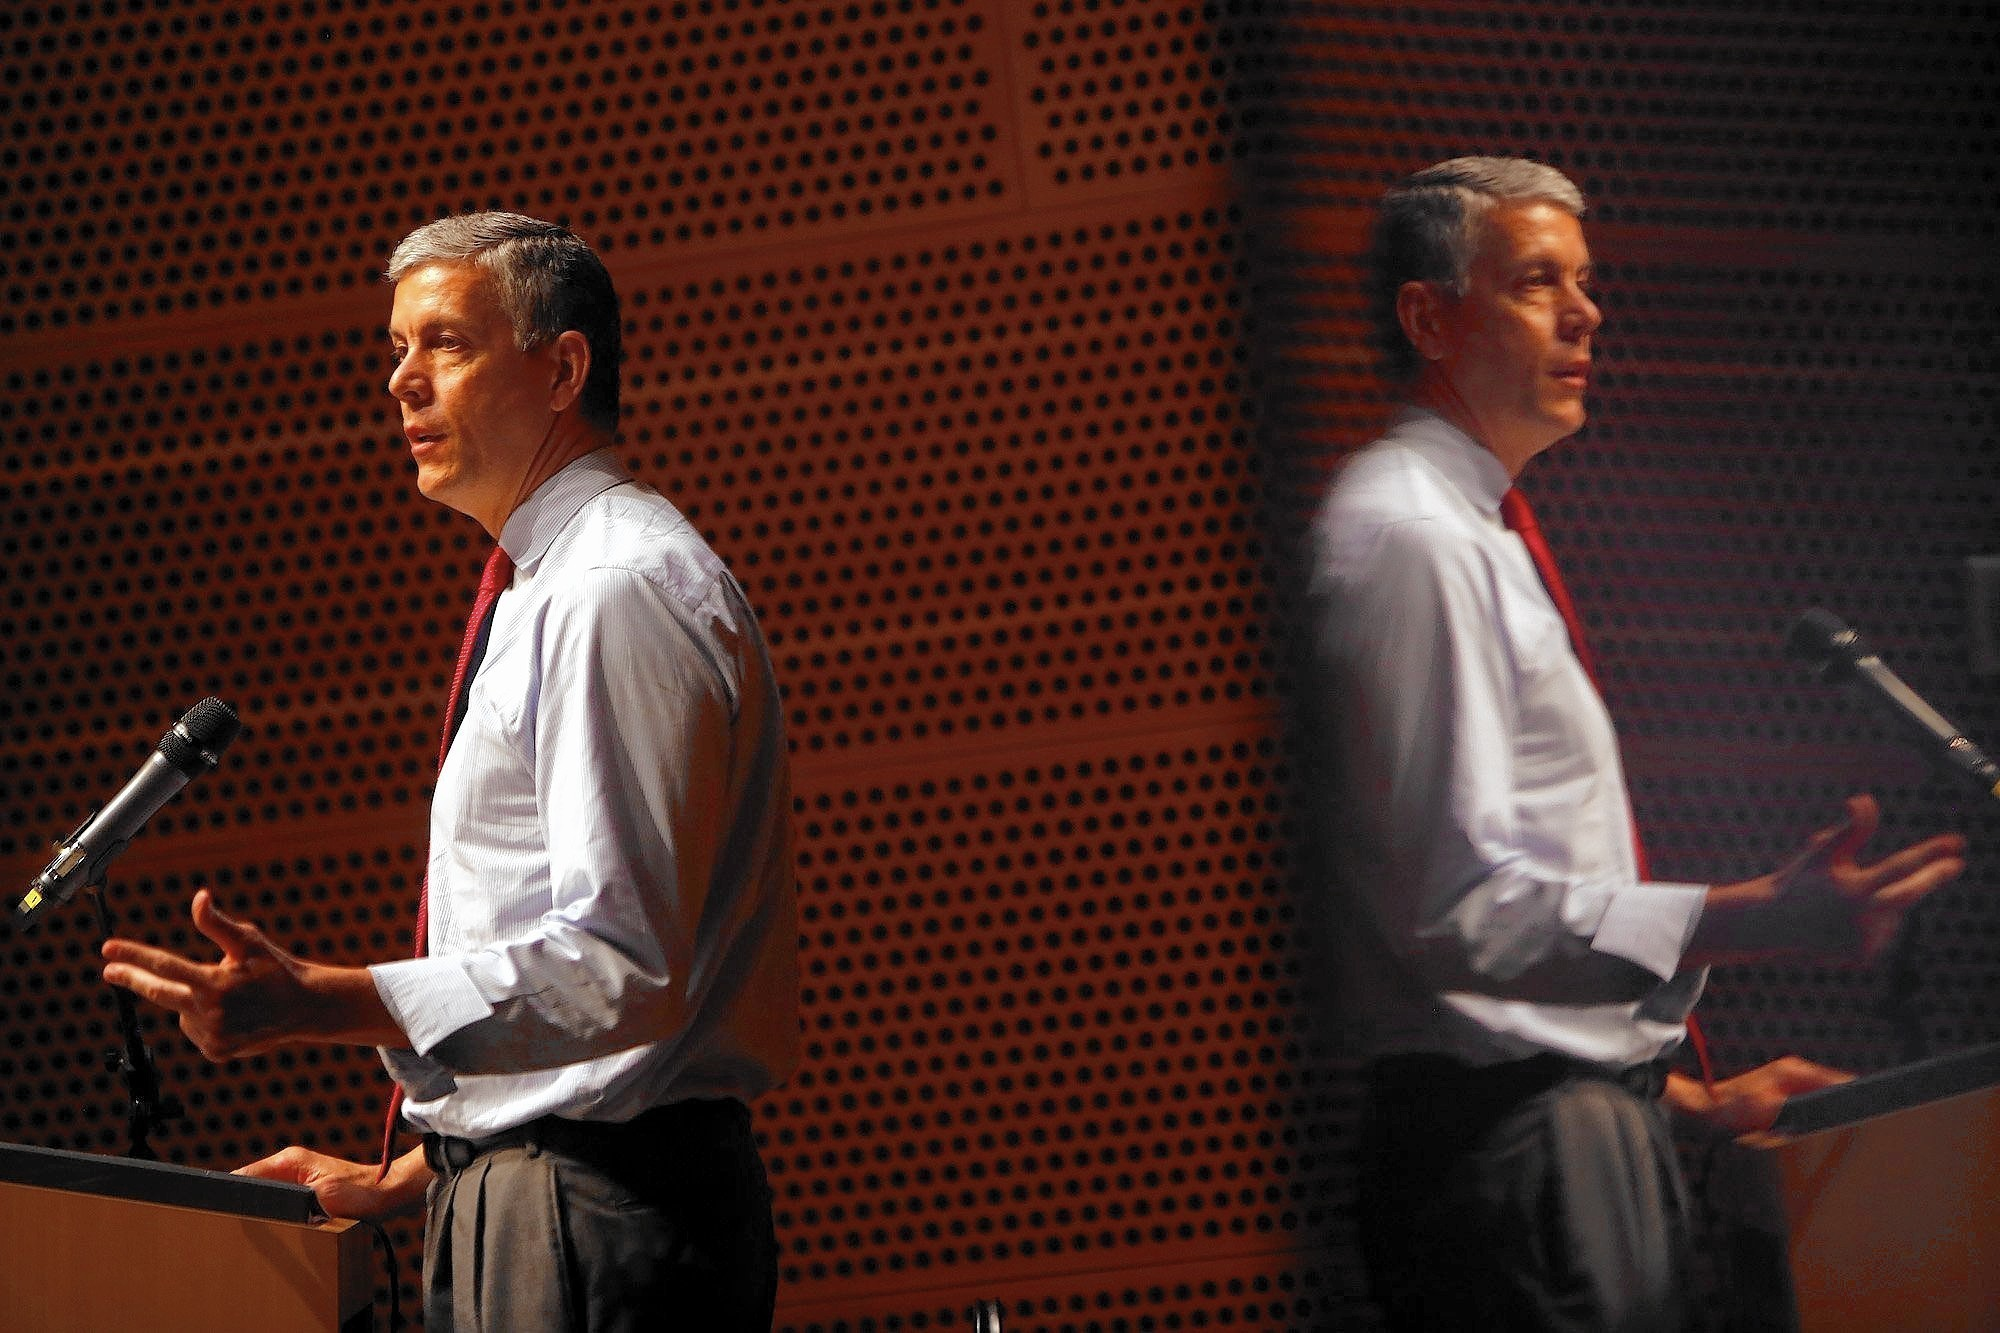 Education Secretary Duncan talks tech with L.A. Unified's Cortines